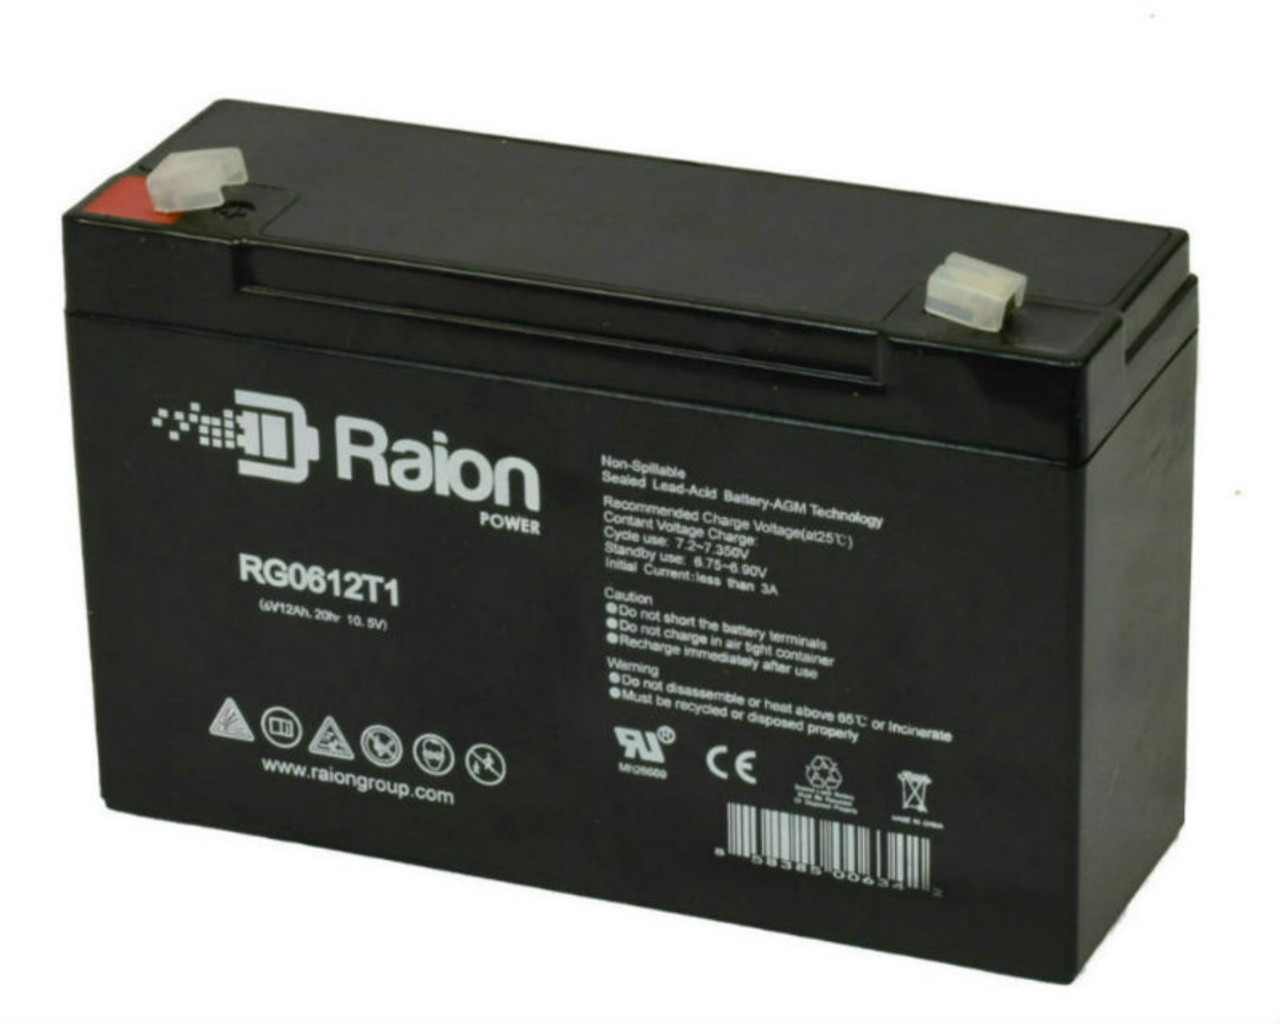 Raion Power RG06120T1 Replacement Battery Pack for Dynaray 70714S emergency light